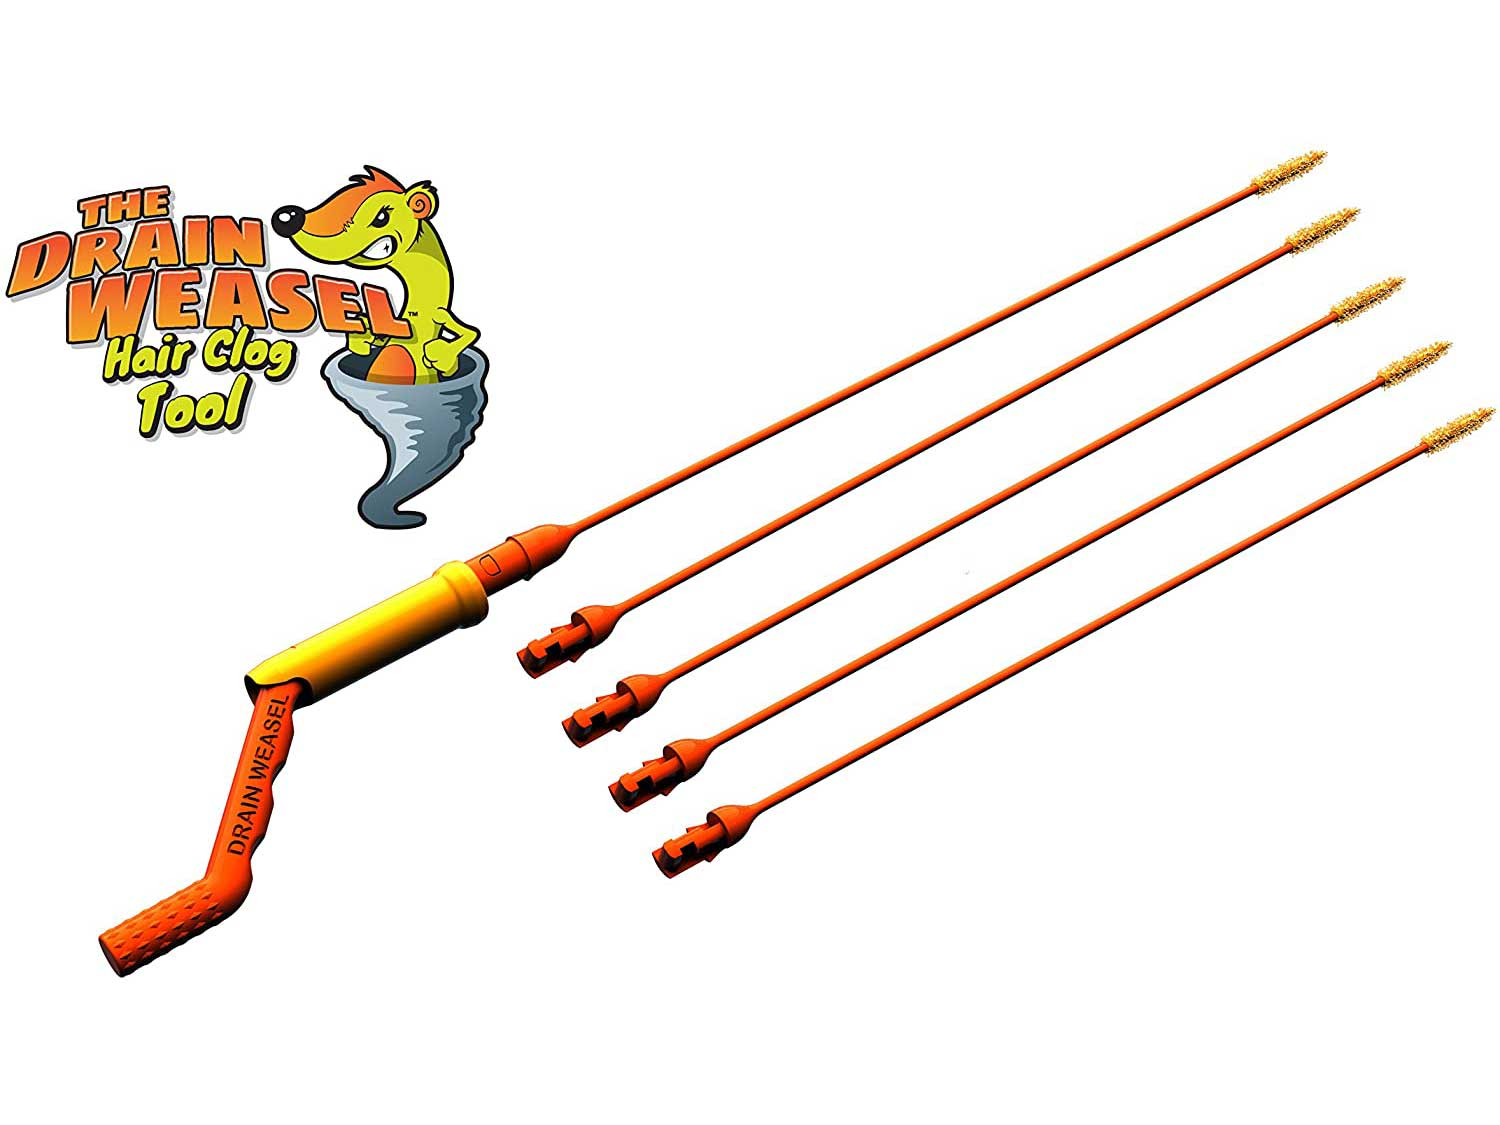 FlexiSnake Drain Weasel Sink Snake - Drain Clog Remover Kit Includes Rotating Handle and 5 Micro-Hook Refill Wands - Thin, Flexible and Easy to Use - Safe for Most Drains and Grates - Made in the USA